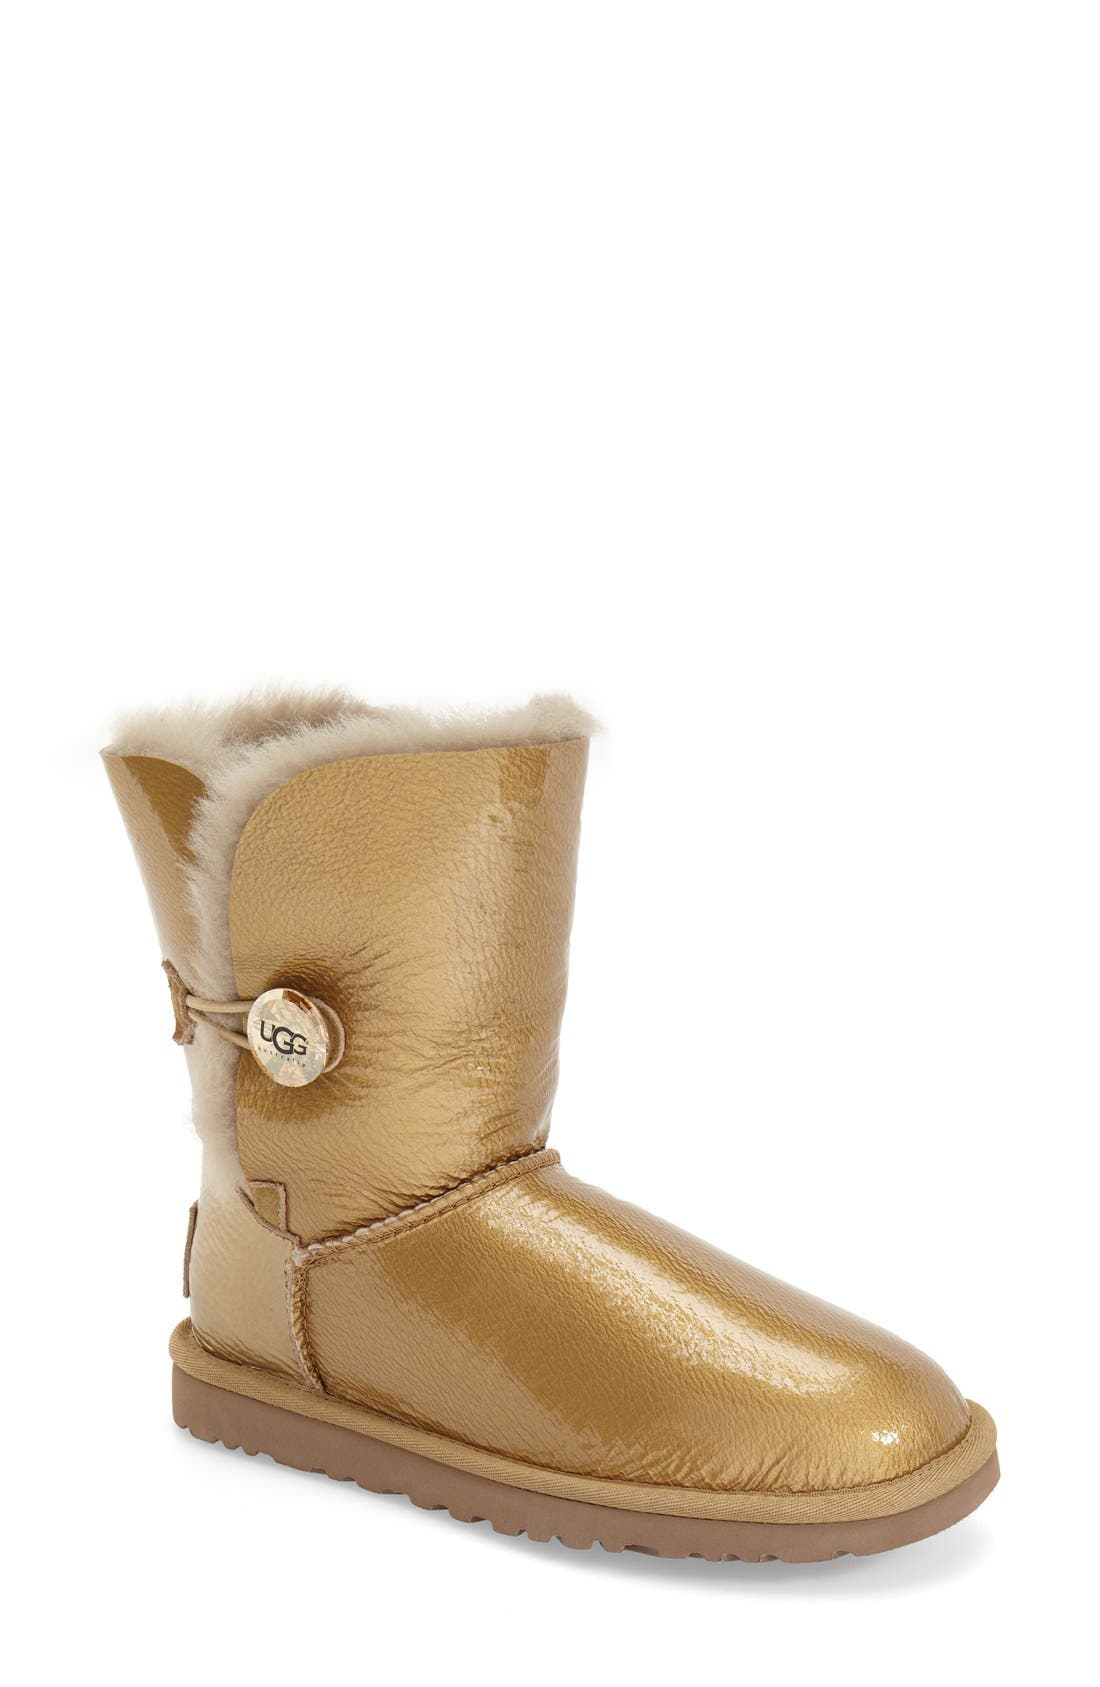 Alternate Image 1 Selected - UGG® 'Bailey Button - Mirage' Water Resistant Boot (Women)